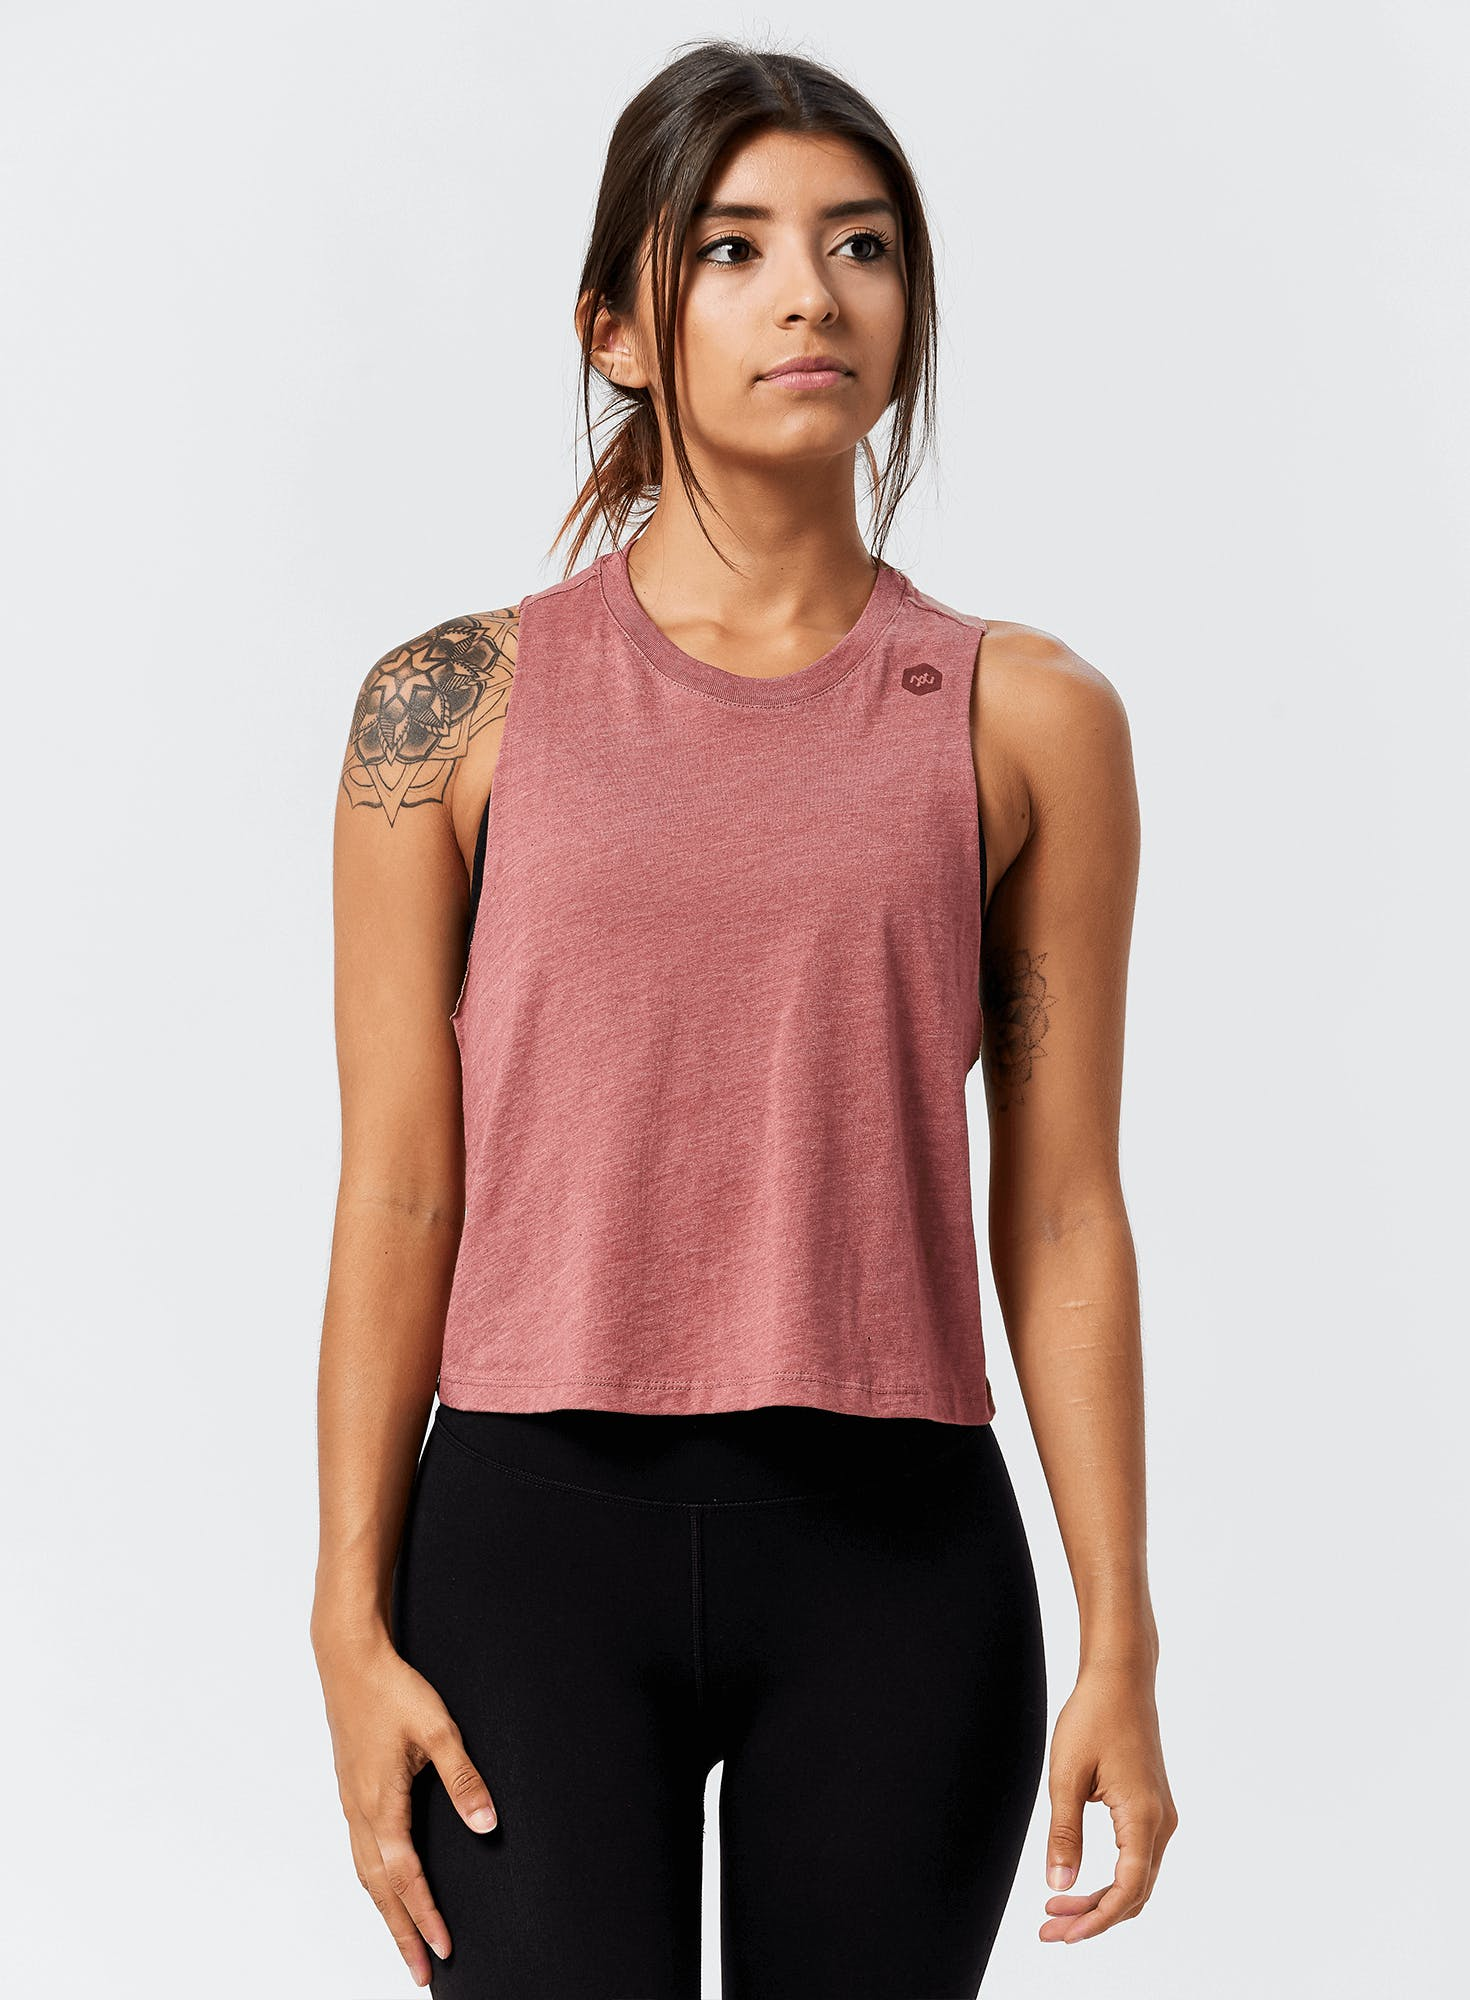 Mini Hex Cropped Racerback Tank